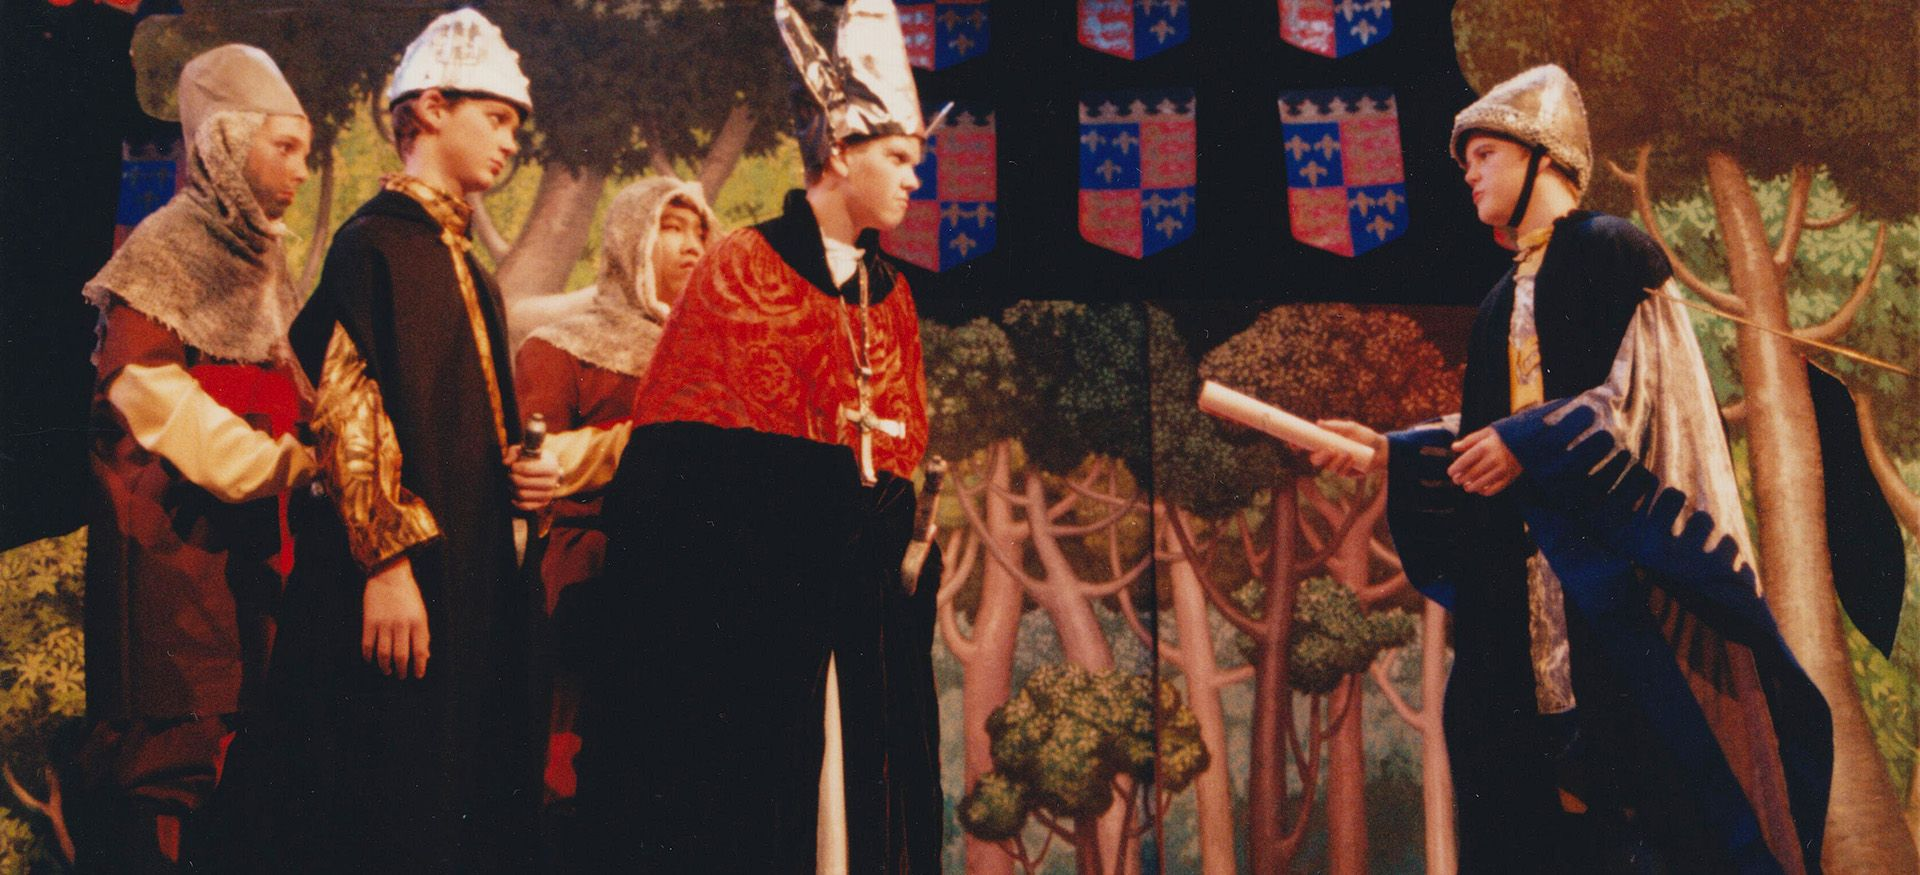 1998, Henry IV Part II